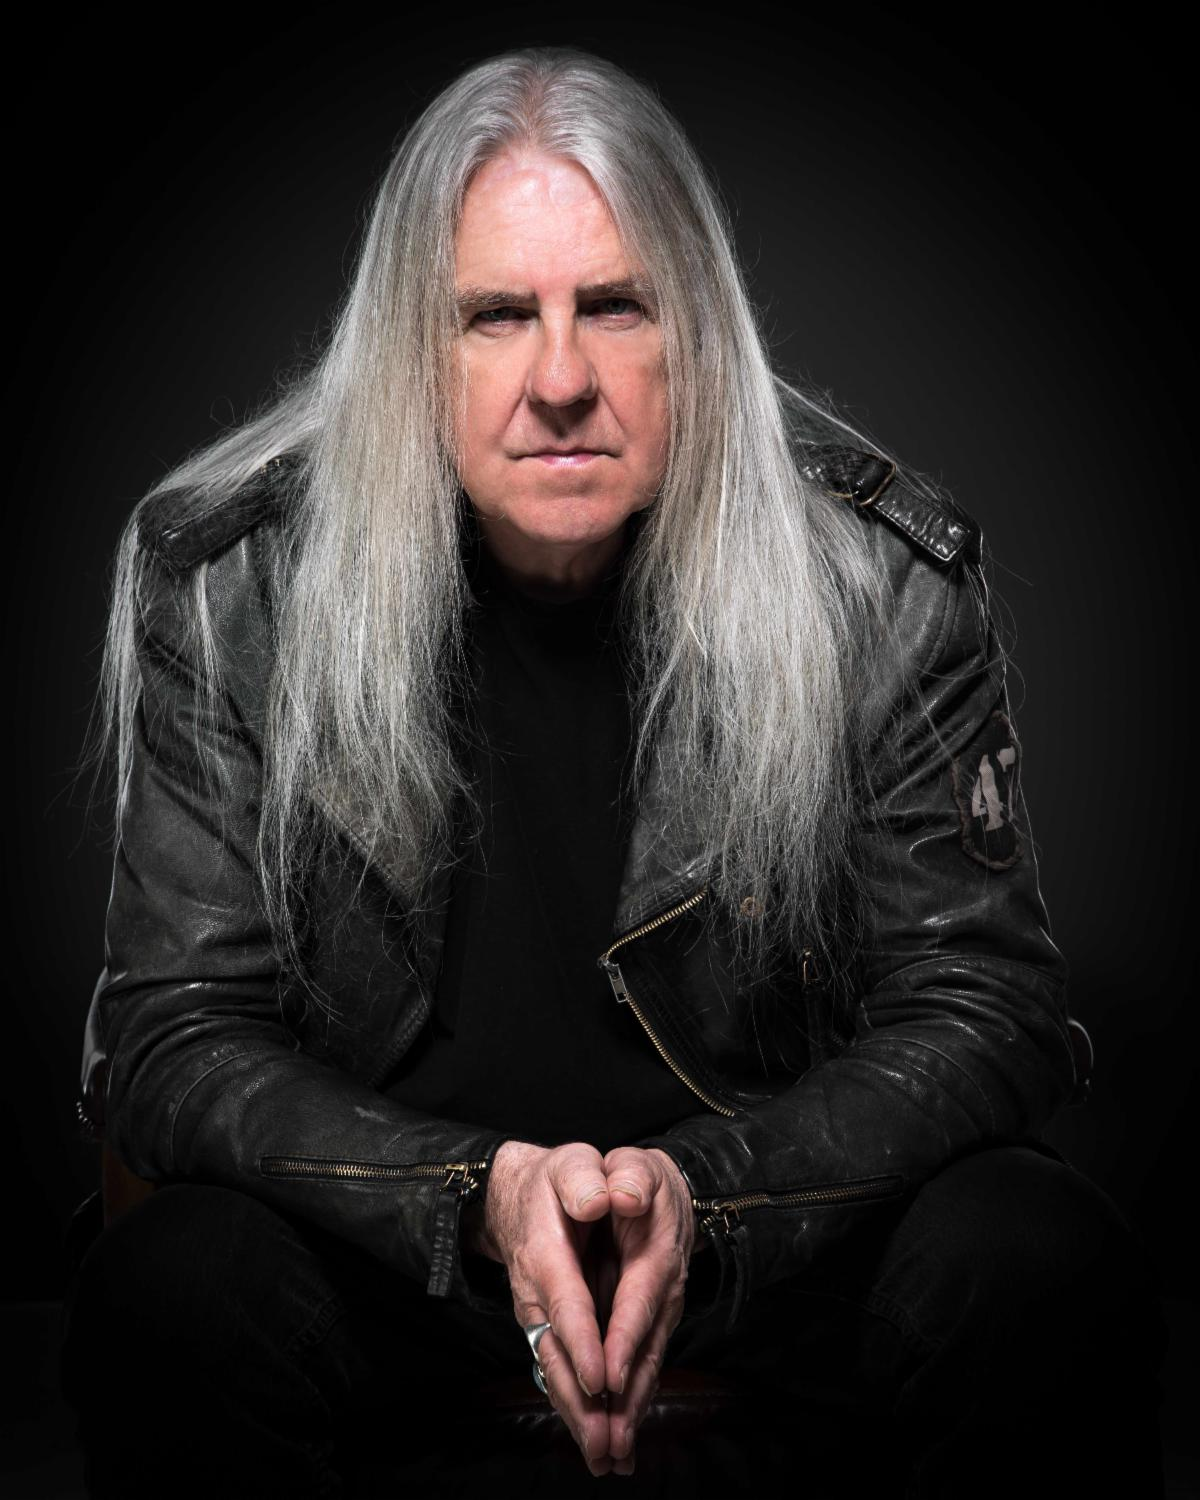 """BIff Byford Releases Video For Romantic New Single """"Me And You"""" on St. Valentine's Day"""